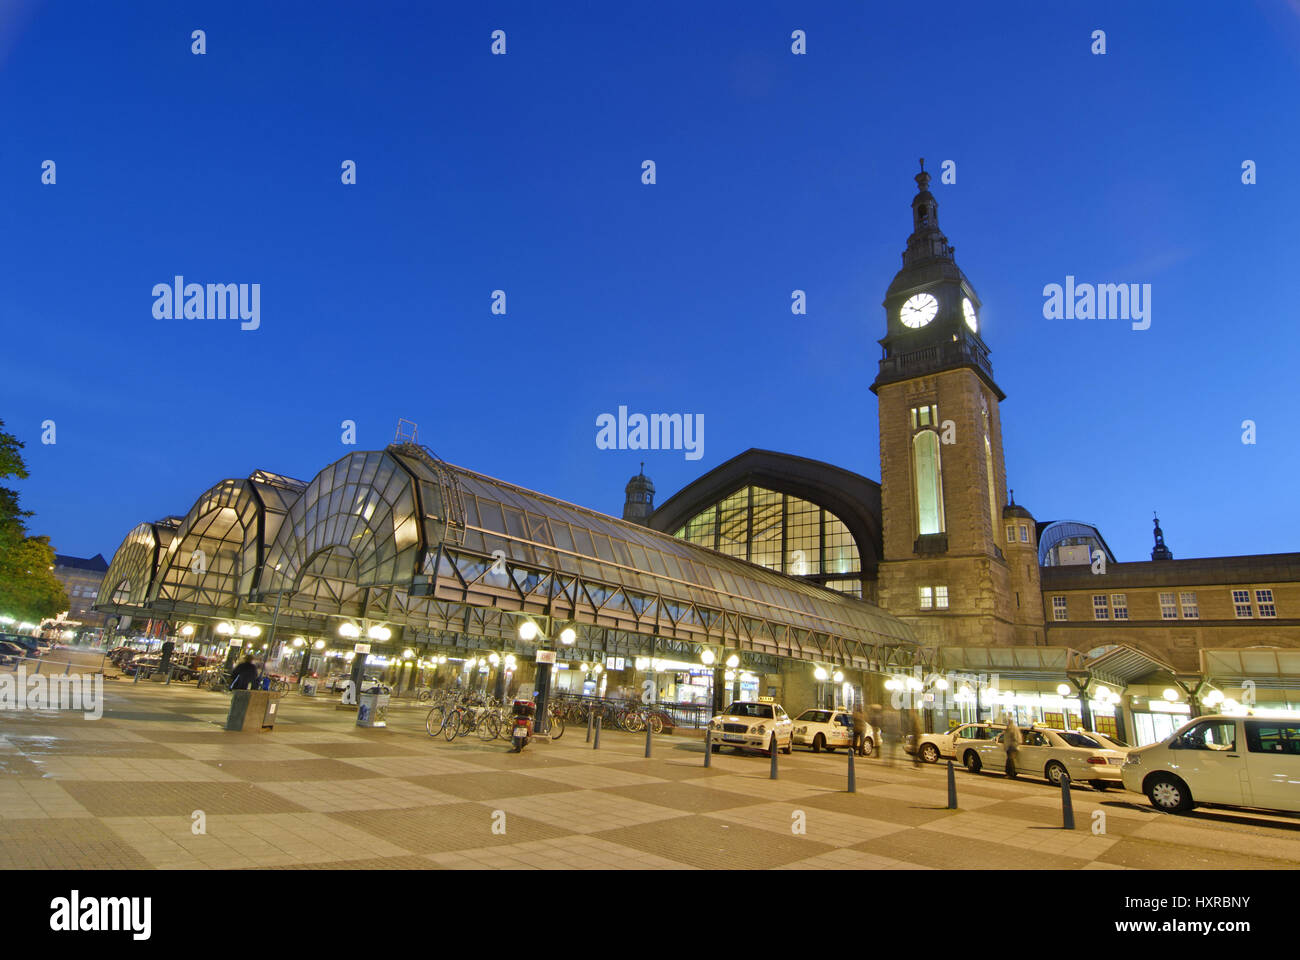 central stations stockfotos central stations bilder alamy. Black Bedroom Furniture Sets. Home Design Ideas